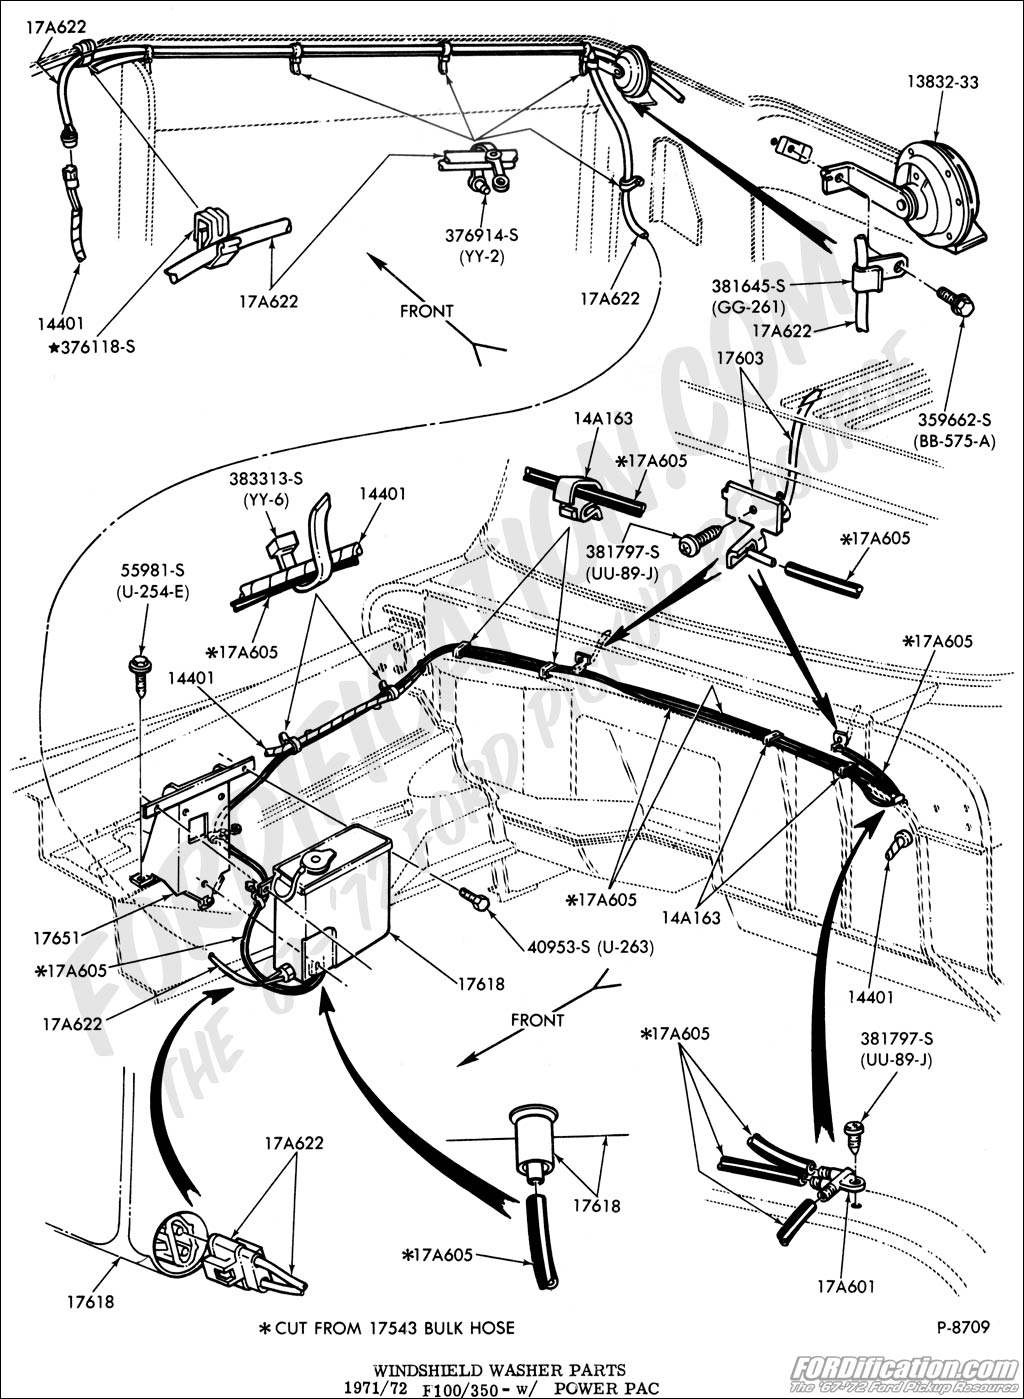 Ford Truck Drawing At Free For Personal Use 2003 Super Duty Fuse Box Diagram 1024x1399 Technical Drawings And Schematics